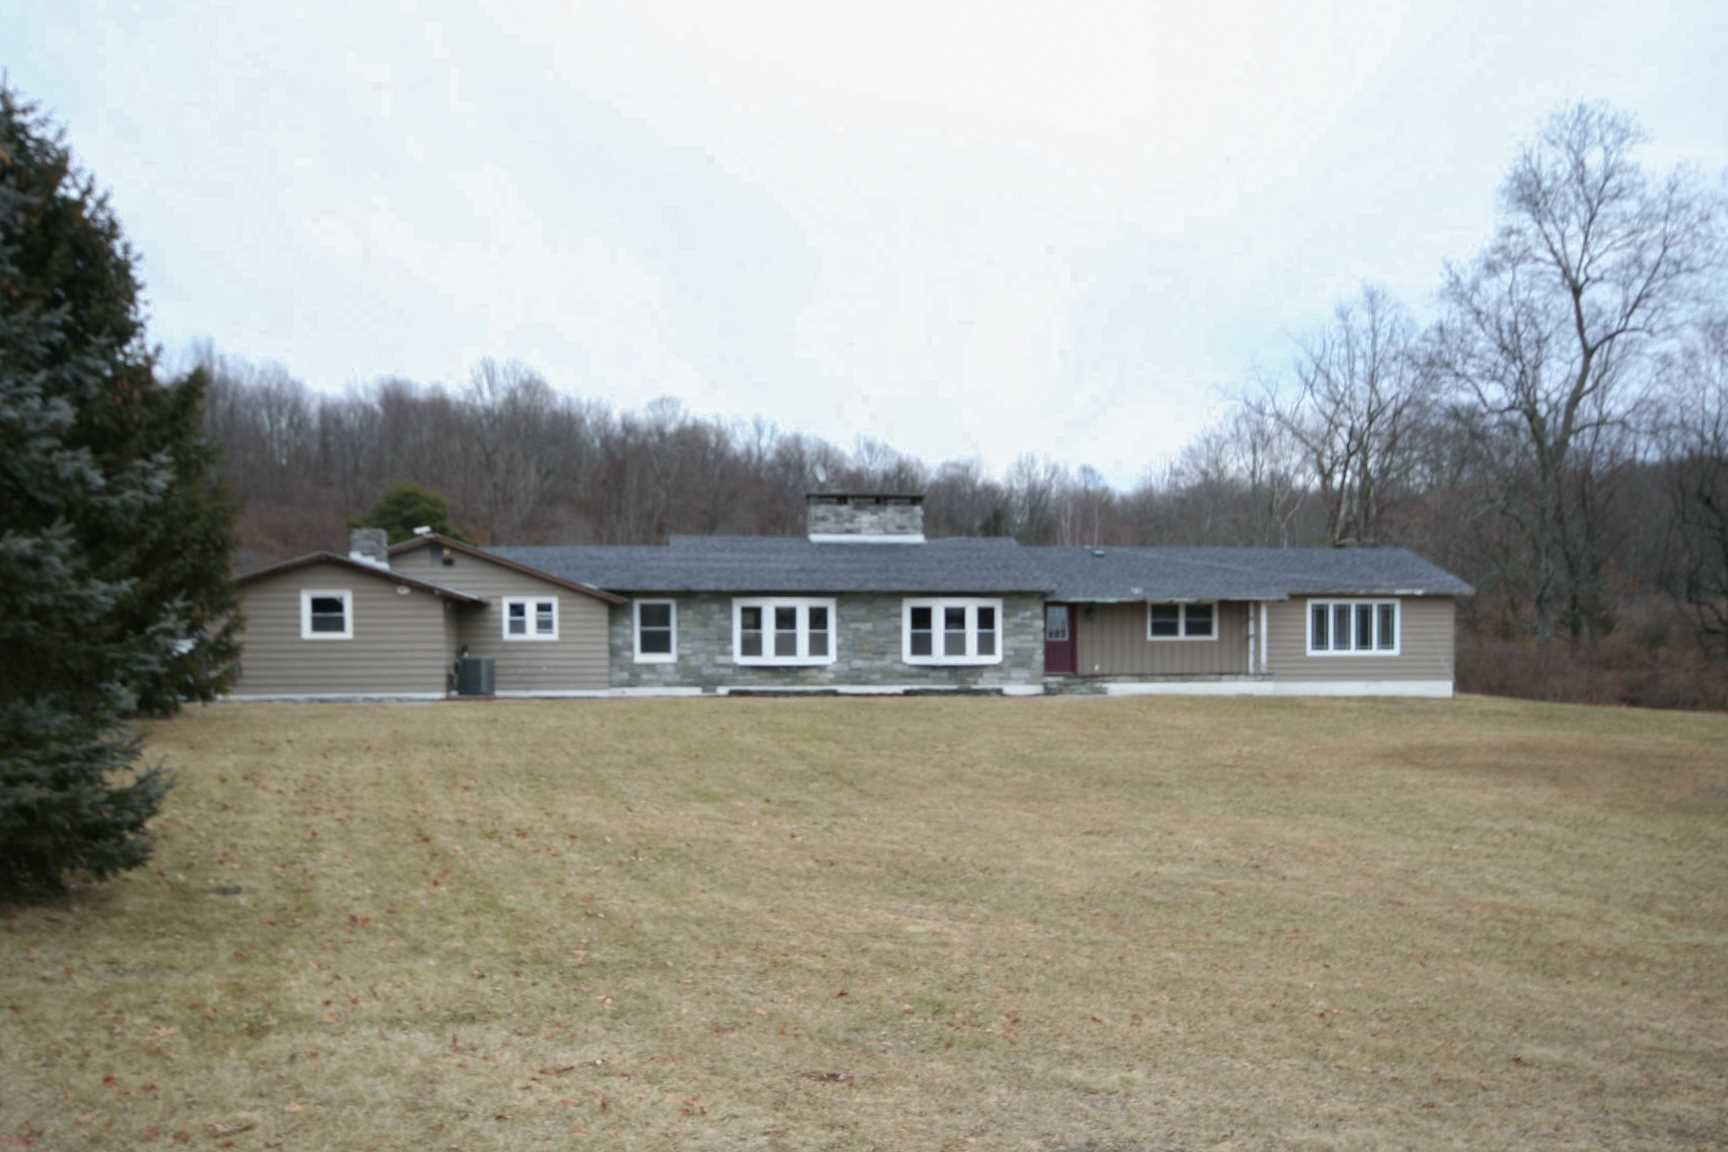 Single Family Home for Sale at 768 WILLOW BROOK Road 768 WILLOW BROOK Road Stanfordville, New York 12514 United States